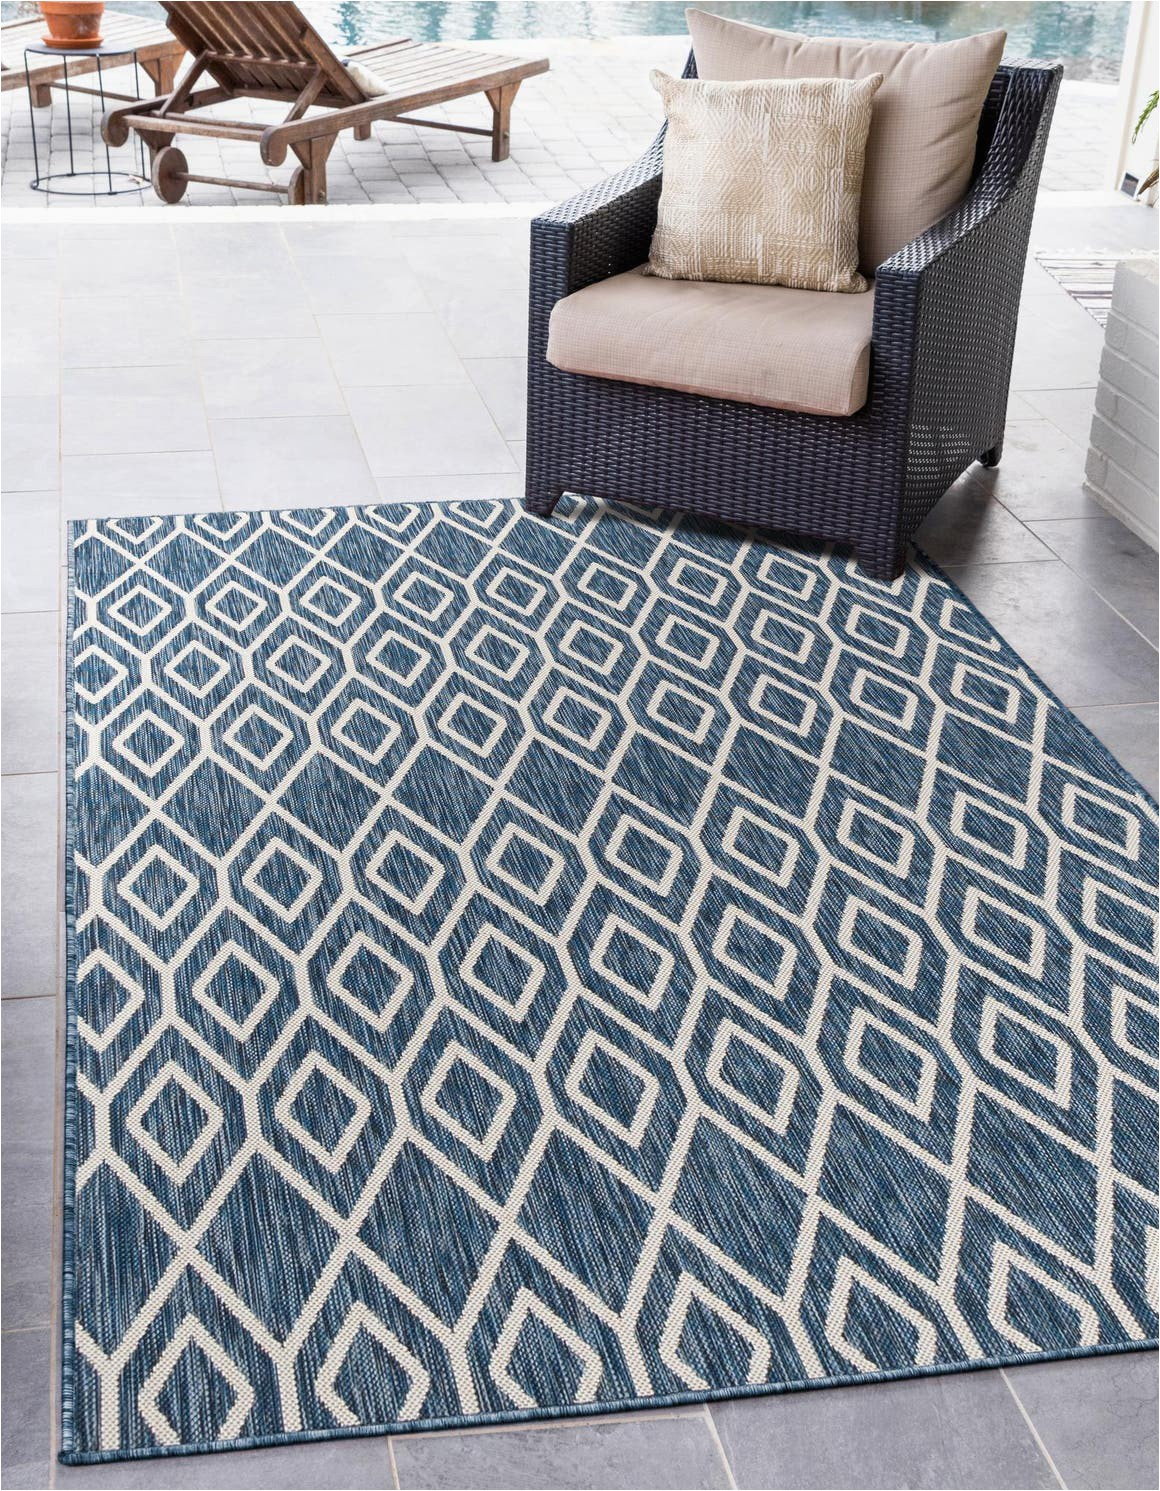 blue 4x6 jill zarin outdoor area rug